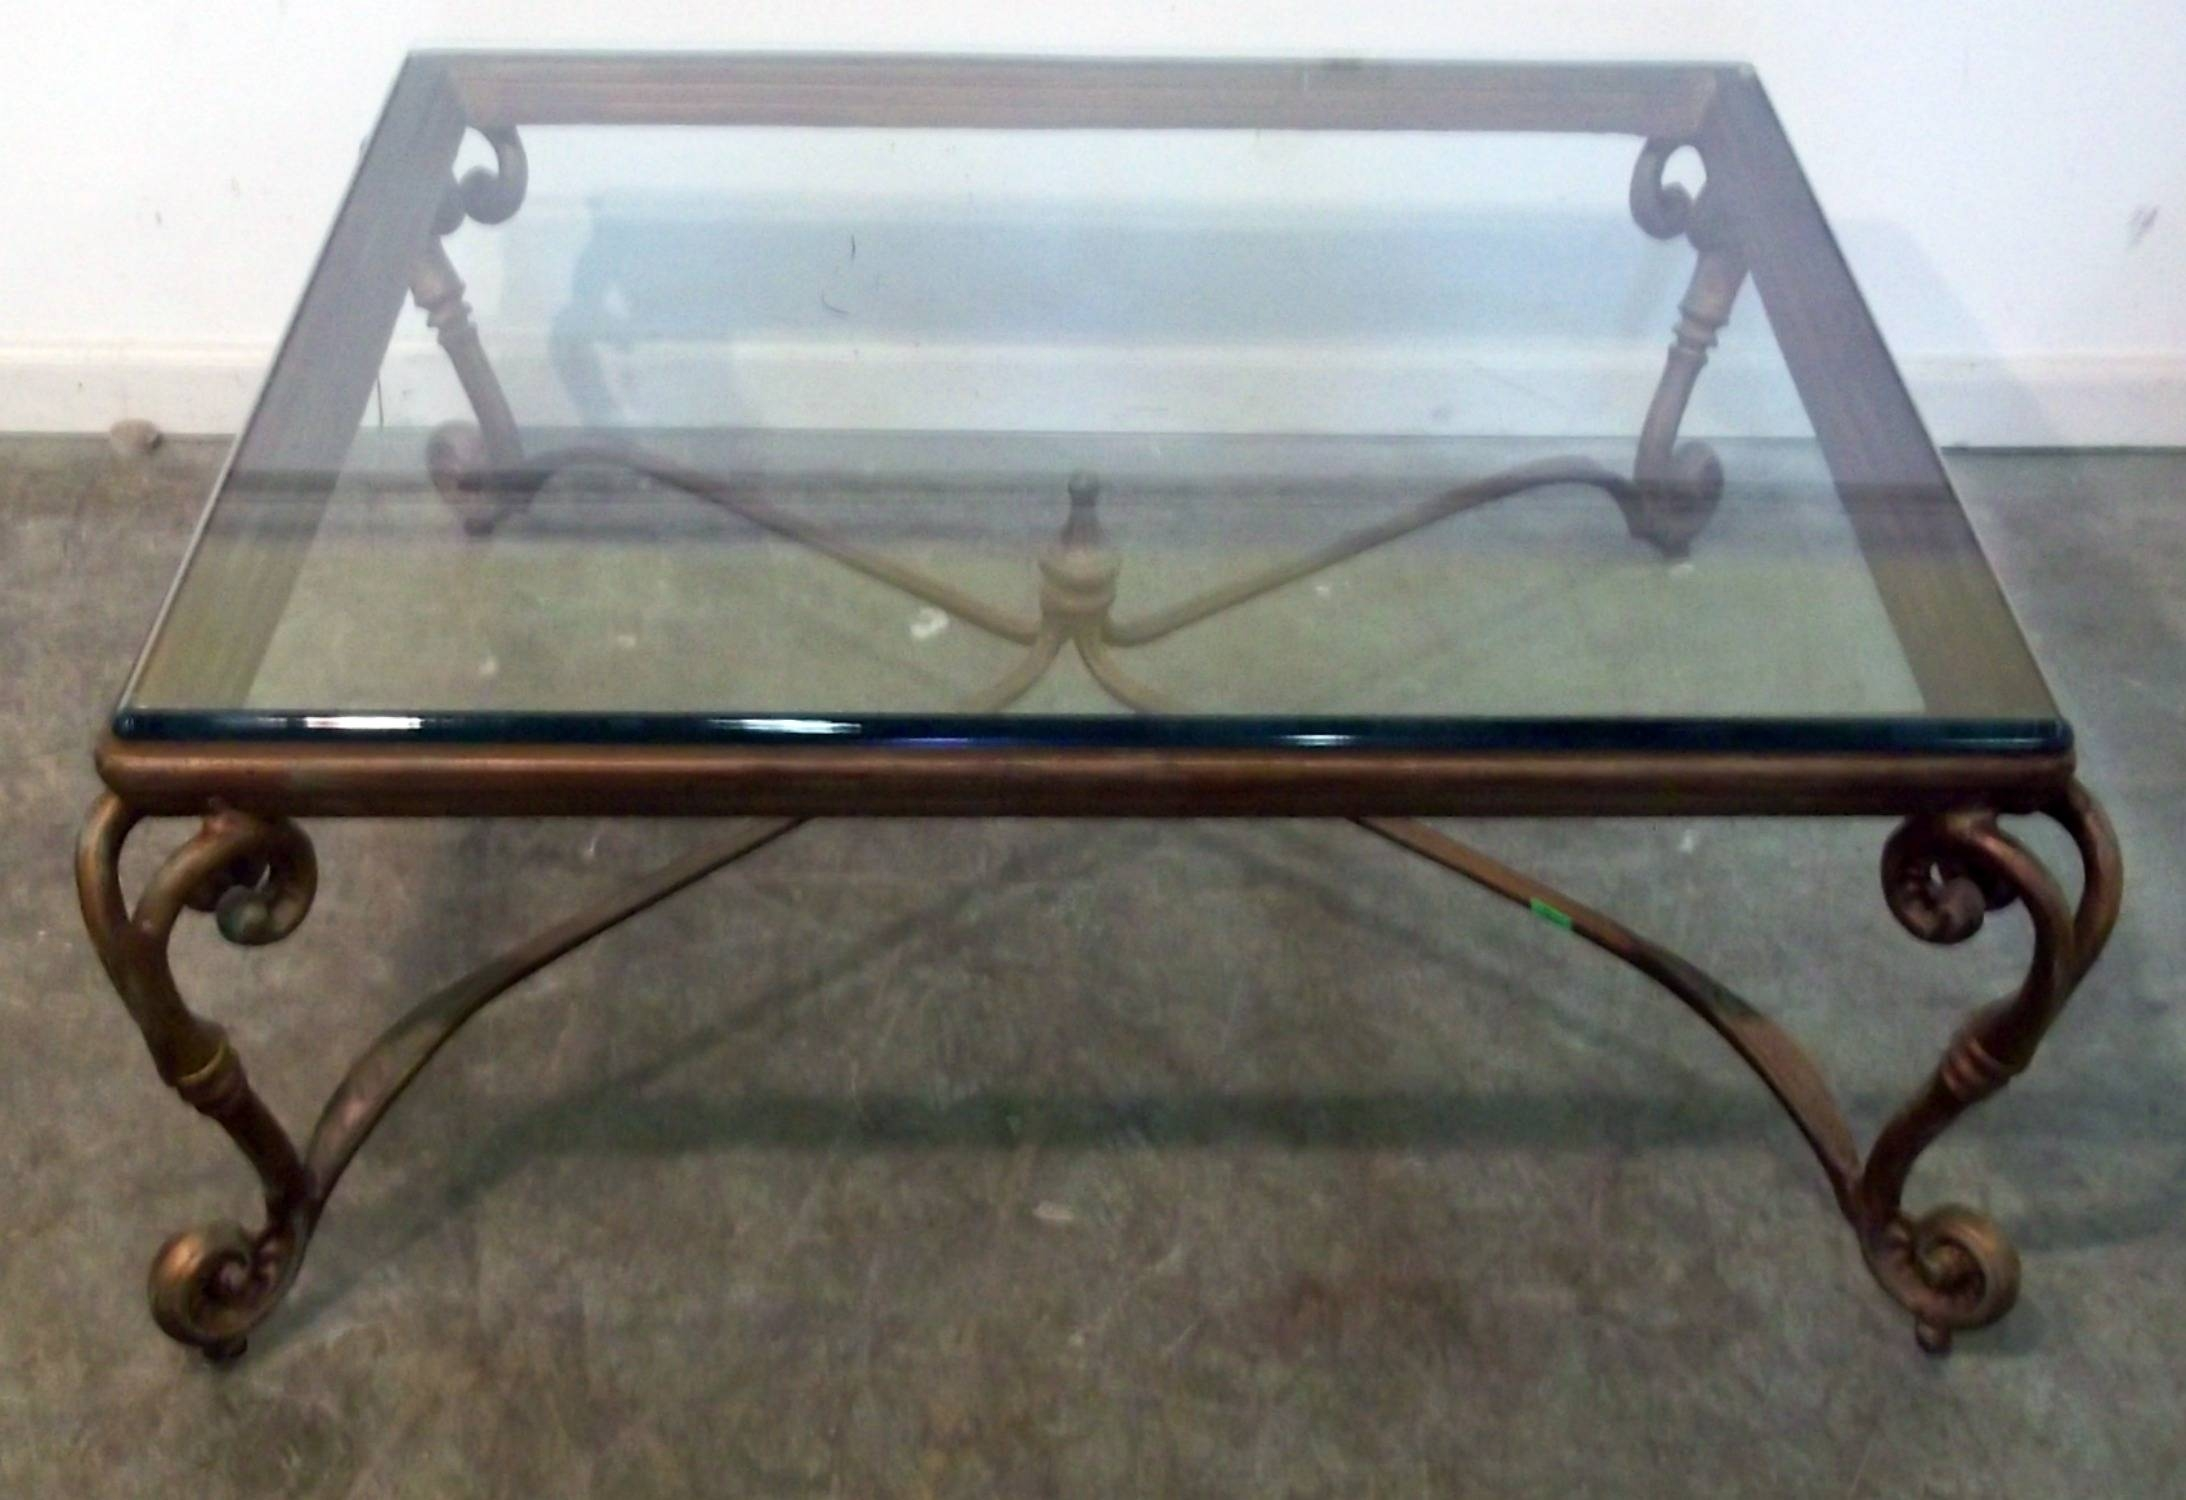 Glass Top Coffee Table With Iron Base | Coffee Tables Decoration within Metal Glass Coffee Tables (Image 19 of 30)